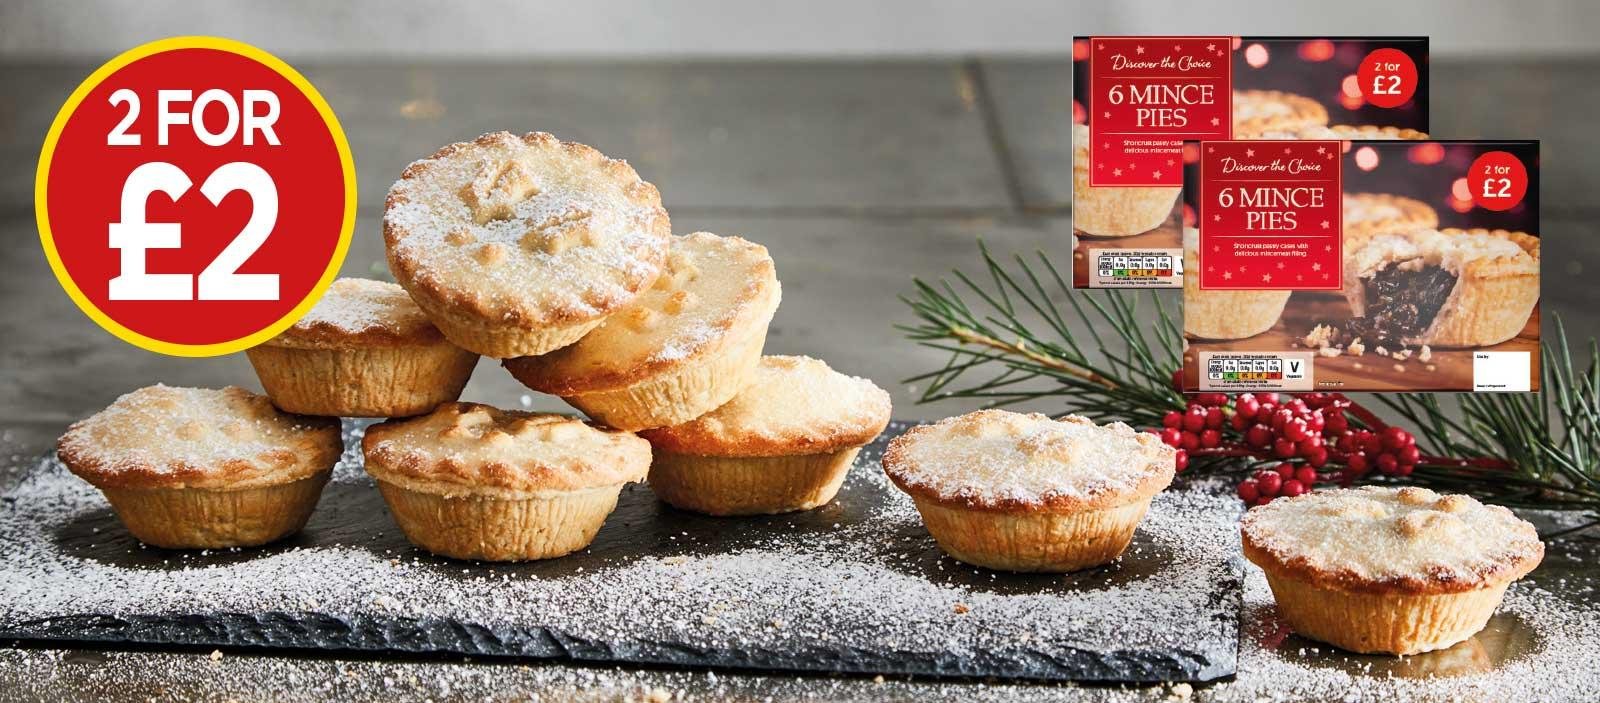 Discover The Choice Mince Pies - 2 For £2 at Budgens